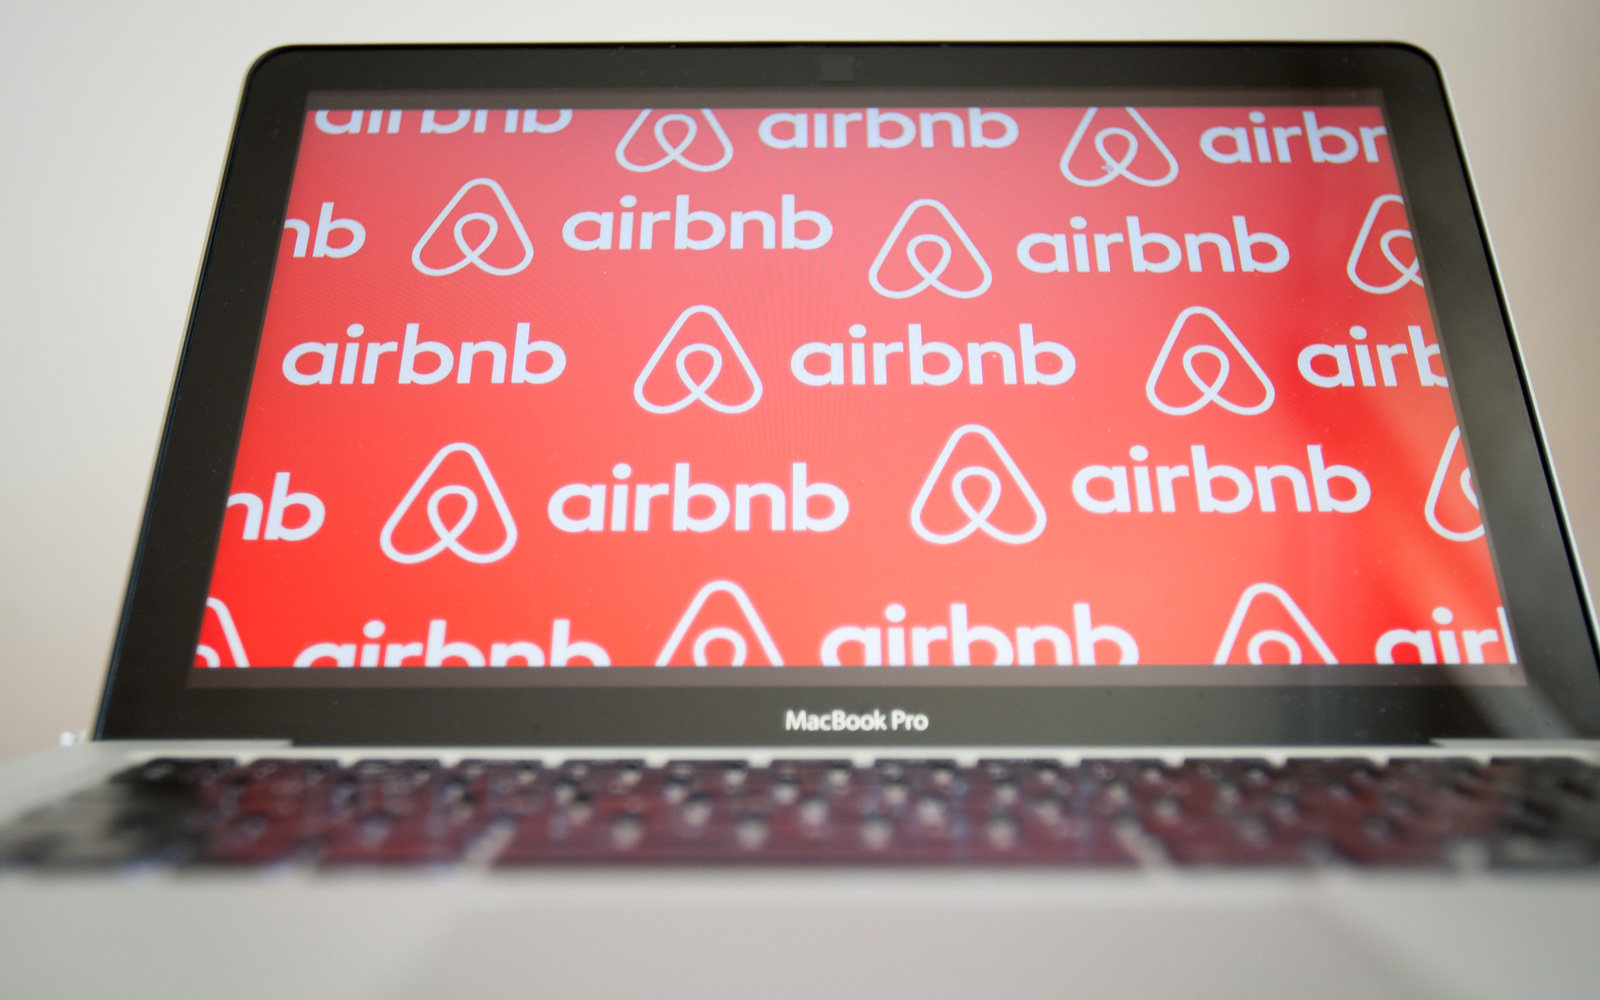 Airbnb host fined $5,000 for rejecting guest based on race.